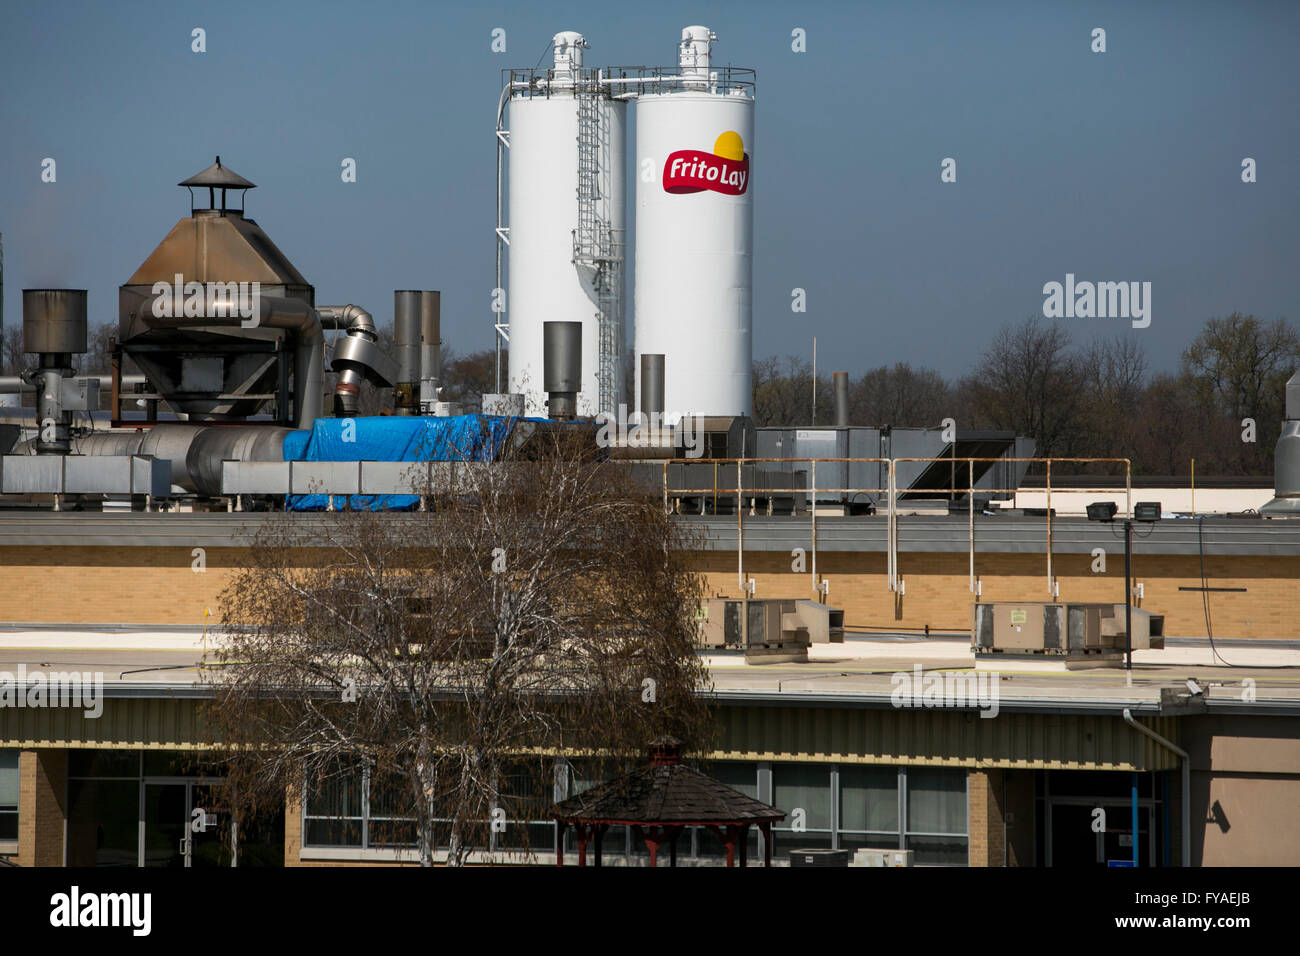 A logo sign outside of a Frito-Lay, Inc., factory in York, Pennsylvania on April 17, 2016. - Stock Image